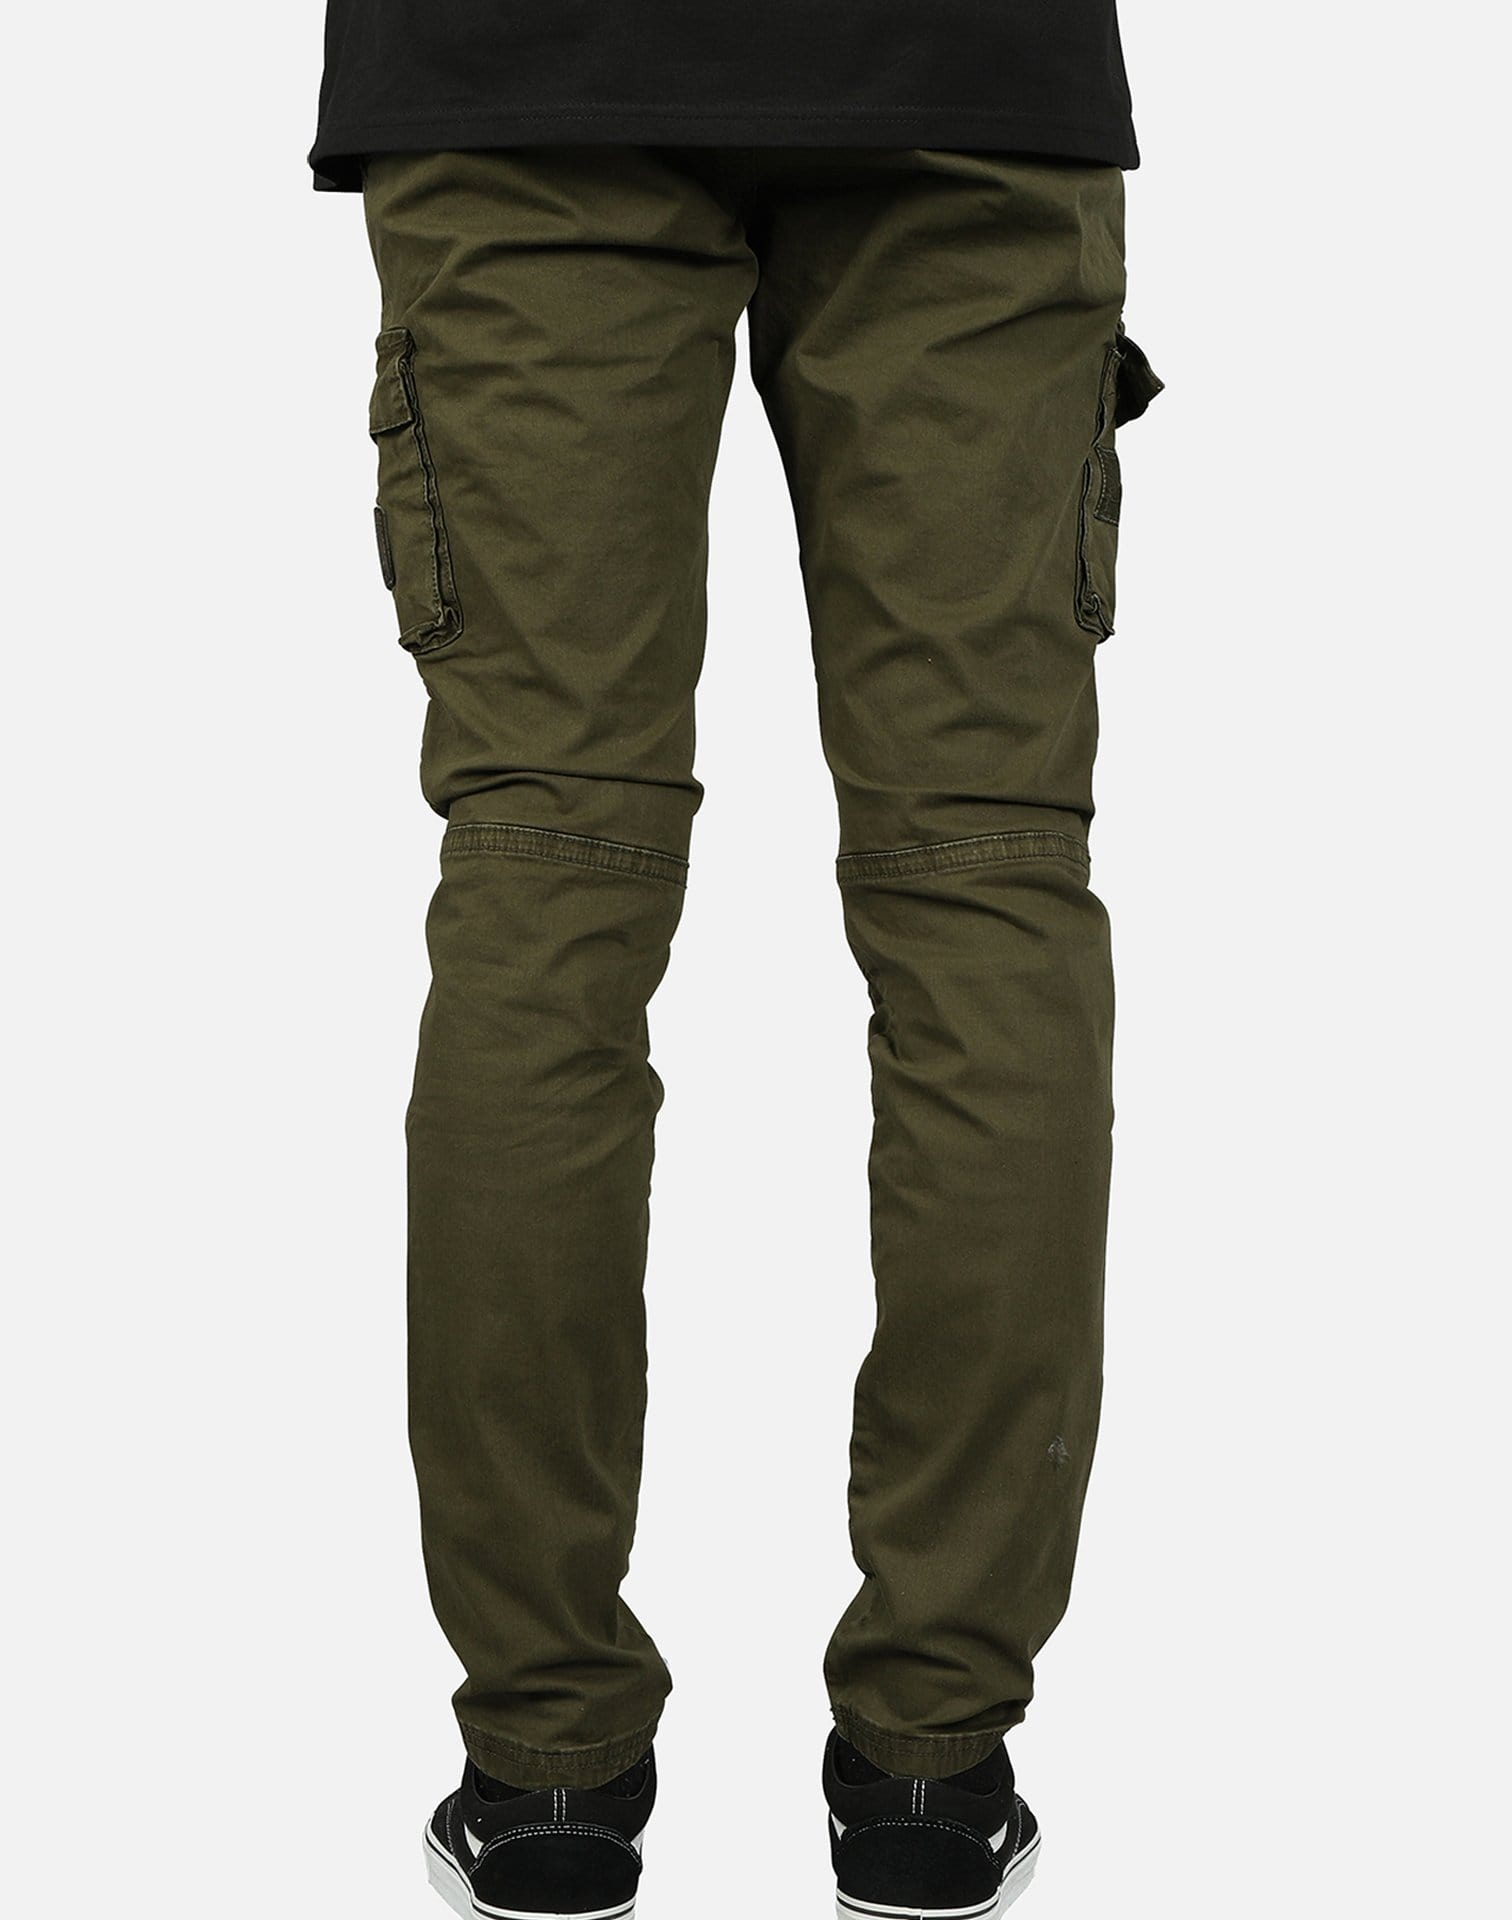 United Cotes Men's Heritage Twill Cargo Pants